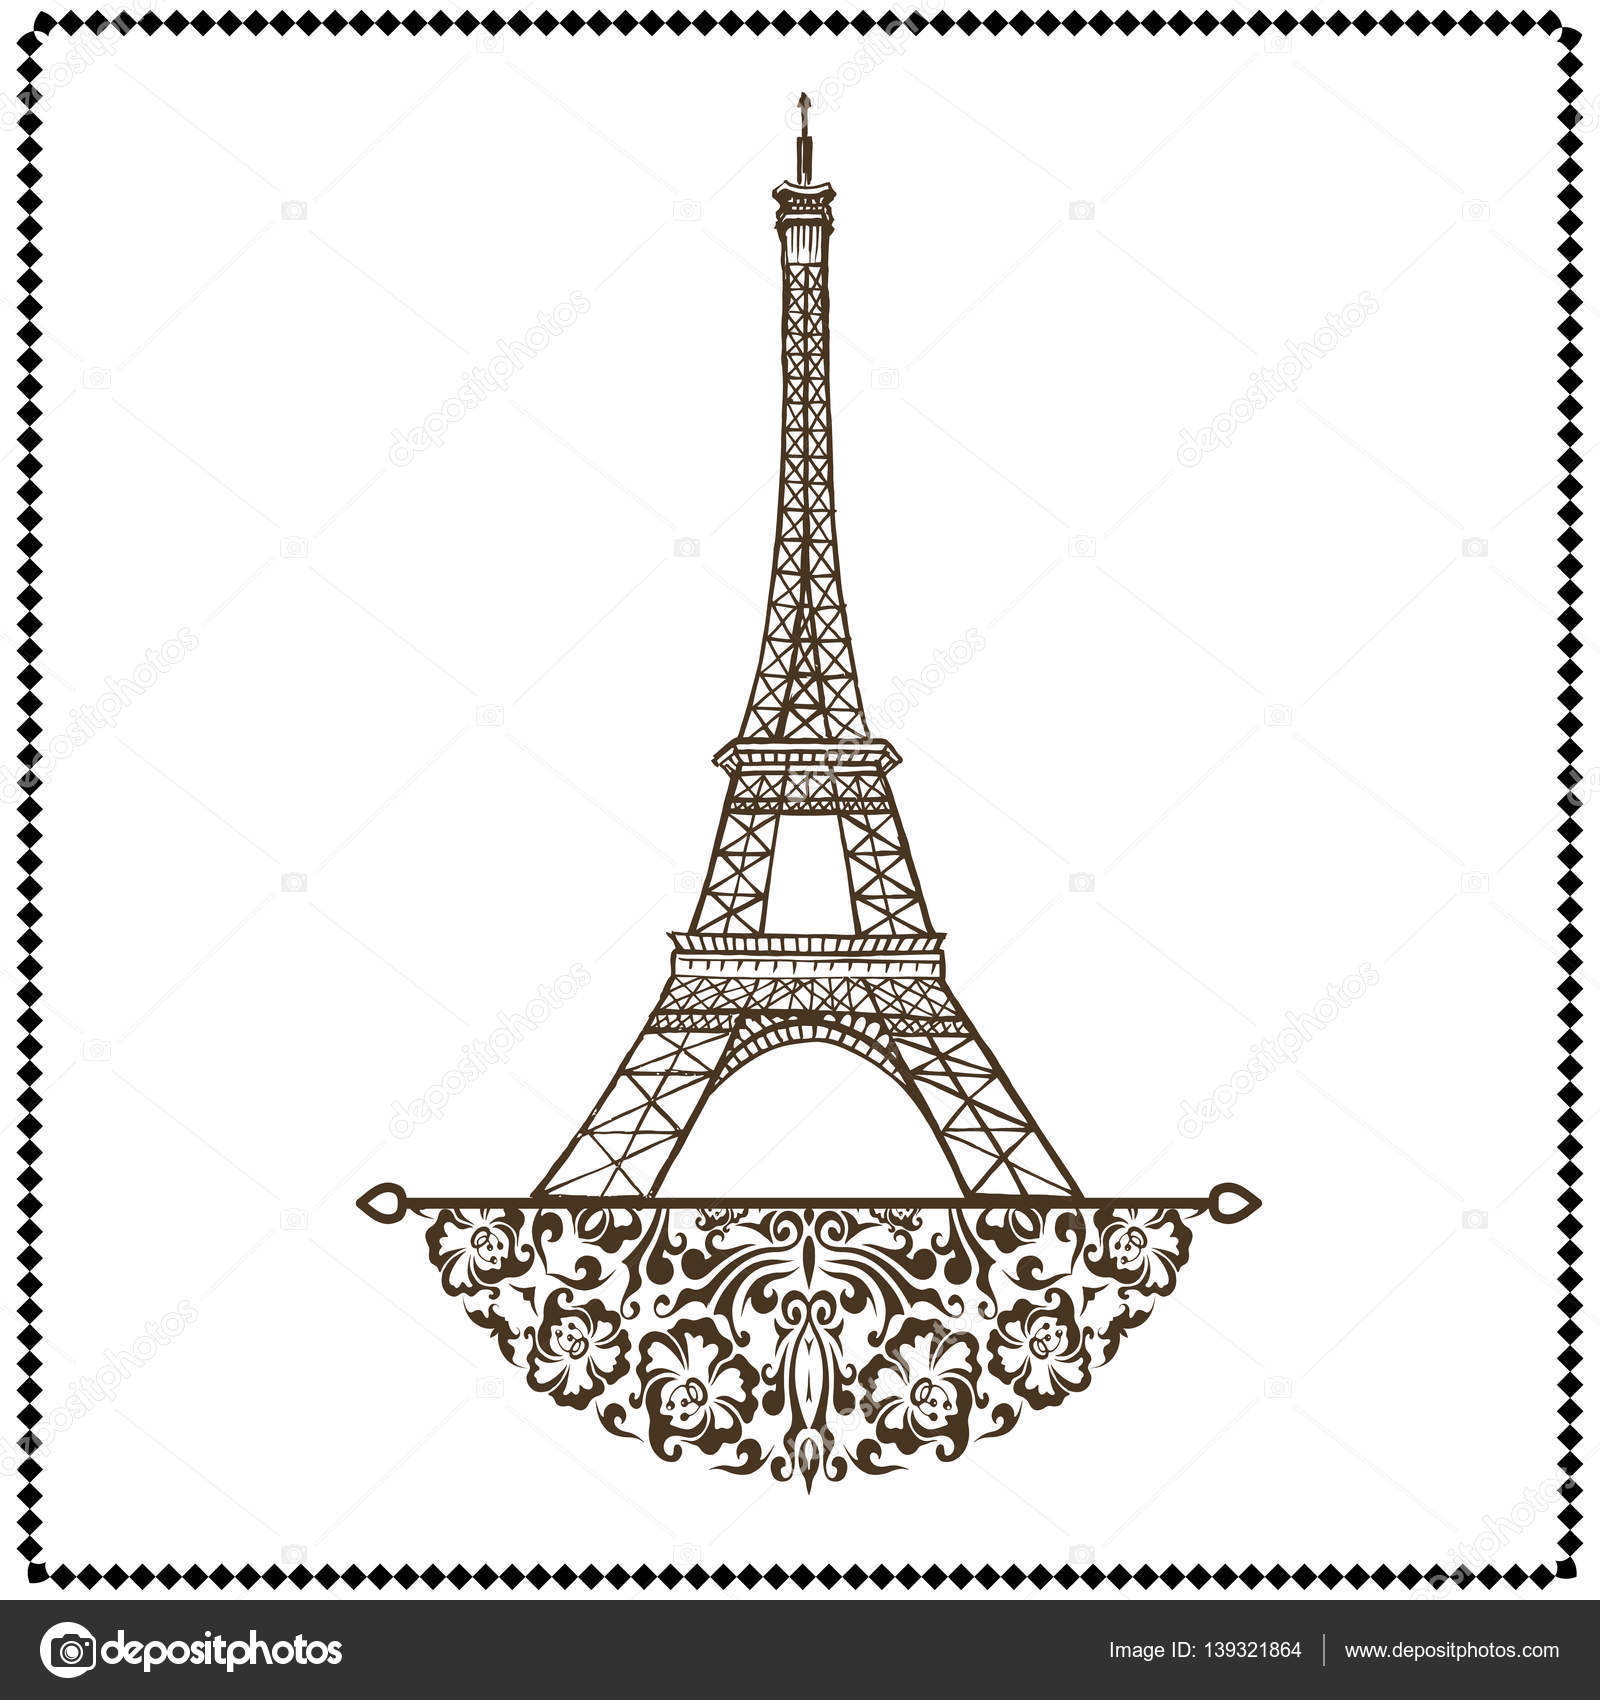 Eiffel tower vector stock vector nemetse 139321864 vector eiffel tower isolated hand drawn illustration vector by nemetse thecheapjerseys Gallery